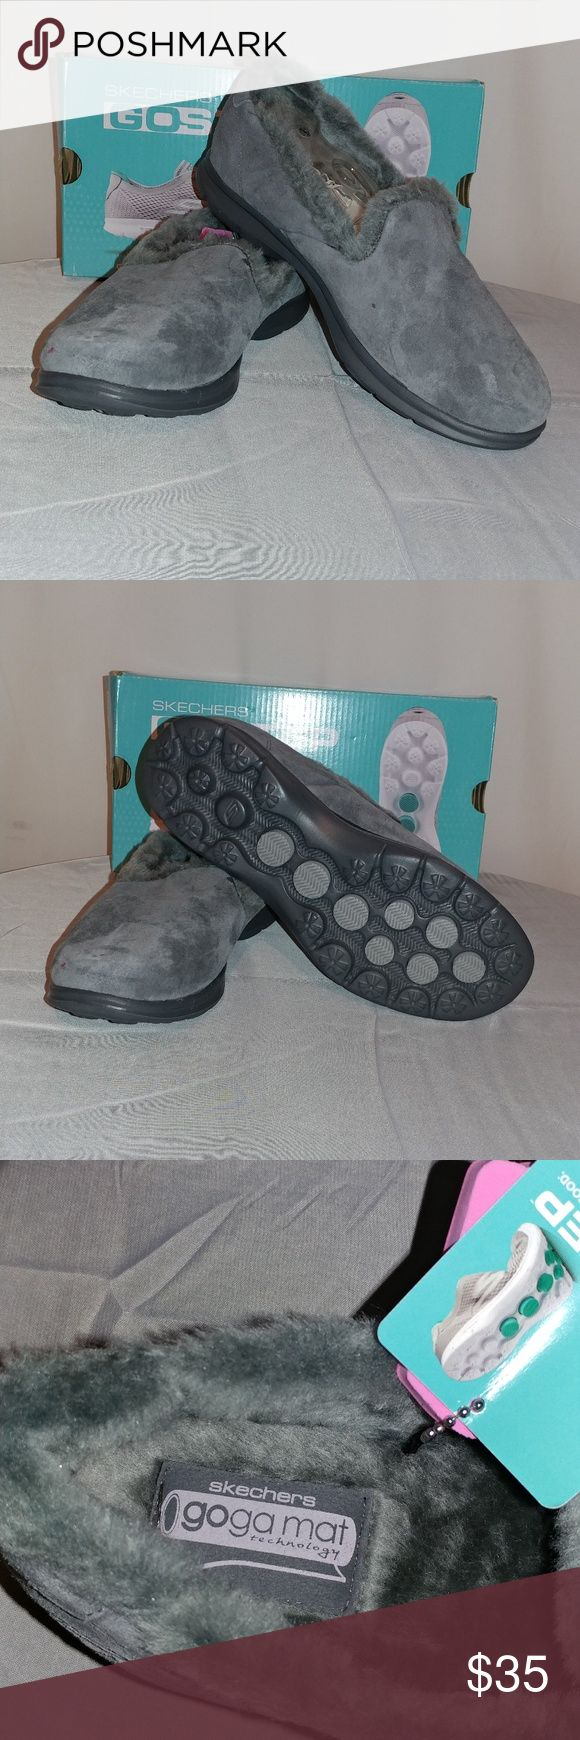 Women's shoes Comfortable and great for your feet go step Skechers size six and a half memory foam inner lining is completely lined with fur suede man-made material on the outside Gray in color brand new never worn with tags and in the Box Shoes Flats & Loafers